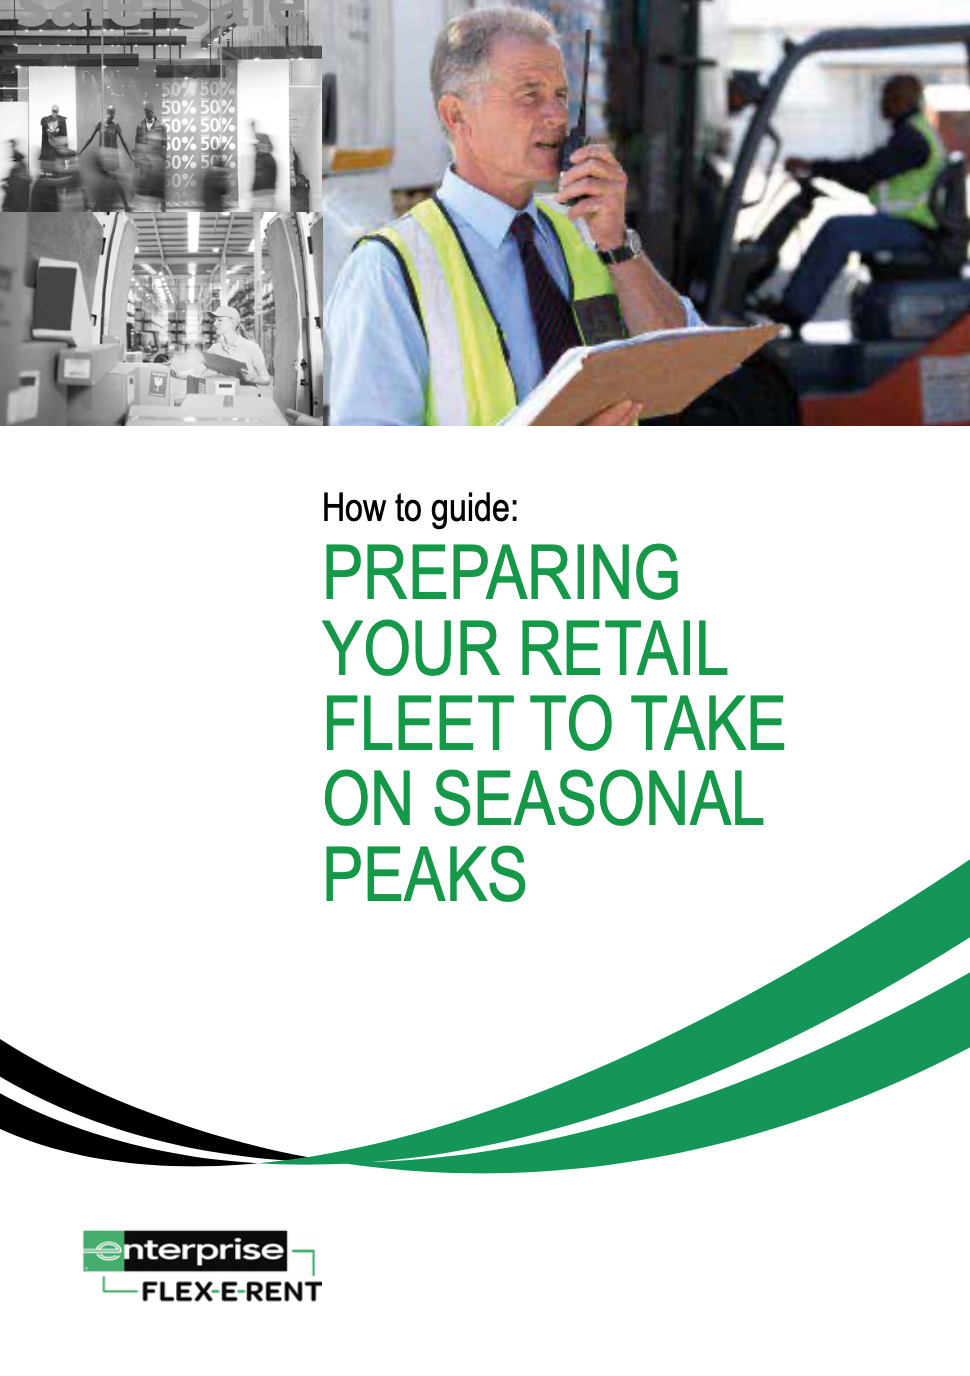 Is your retail fleet prepared for seasonal peaks?